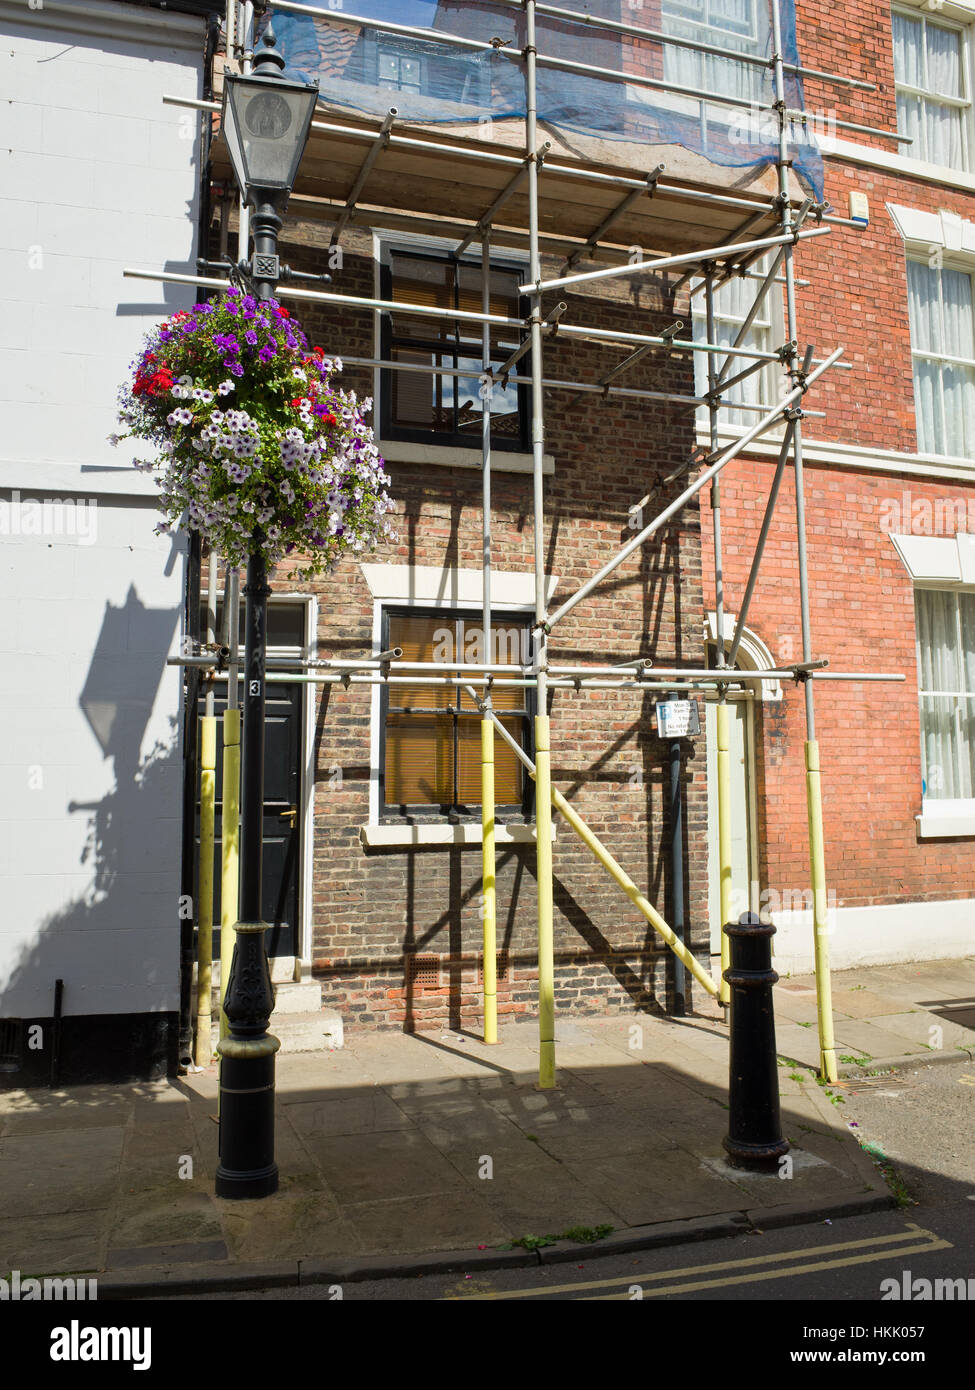 Scaffolding Outside Building Being renovated - Stock Image